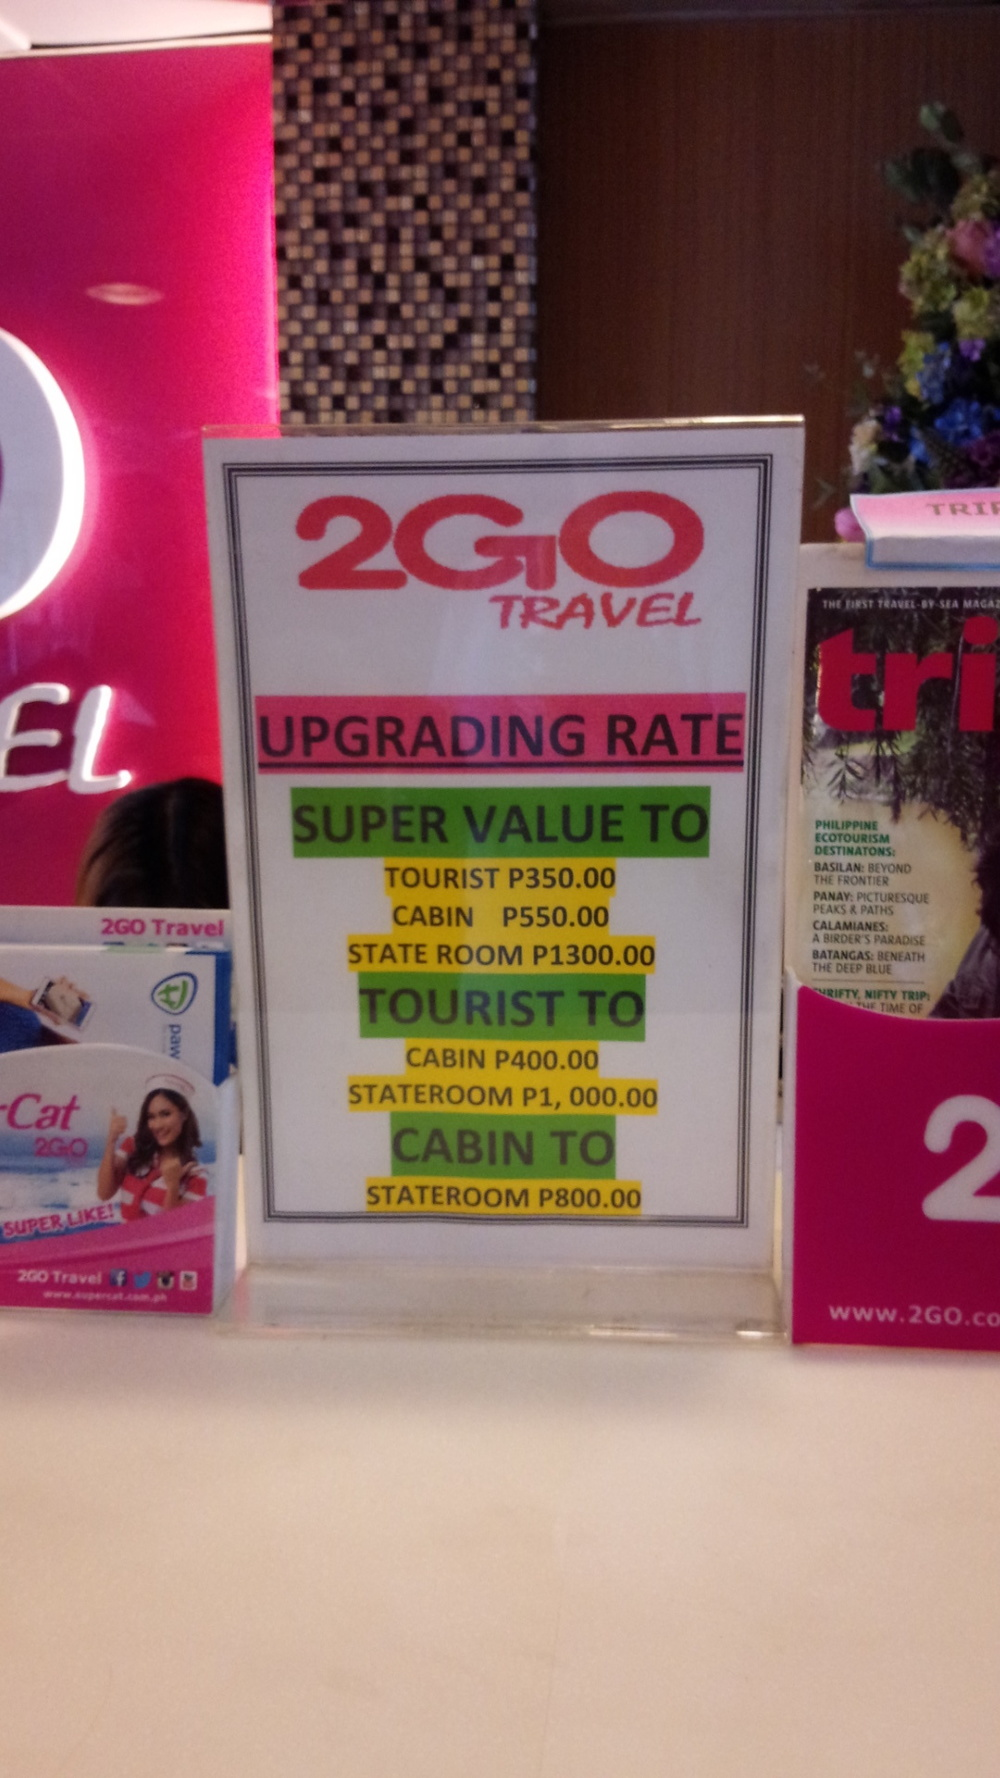 Upgrading on 2GO travel